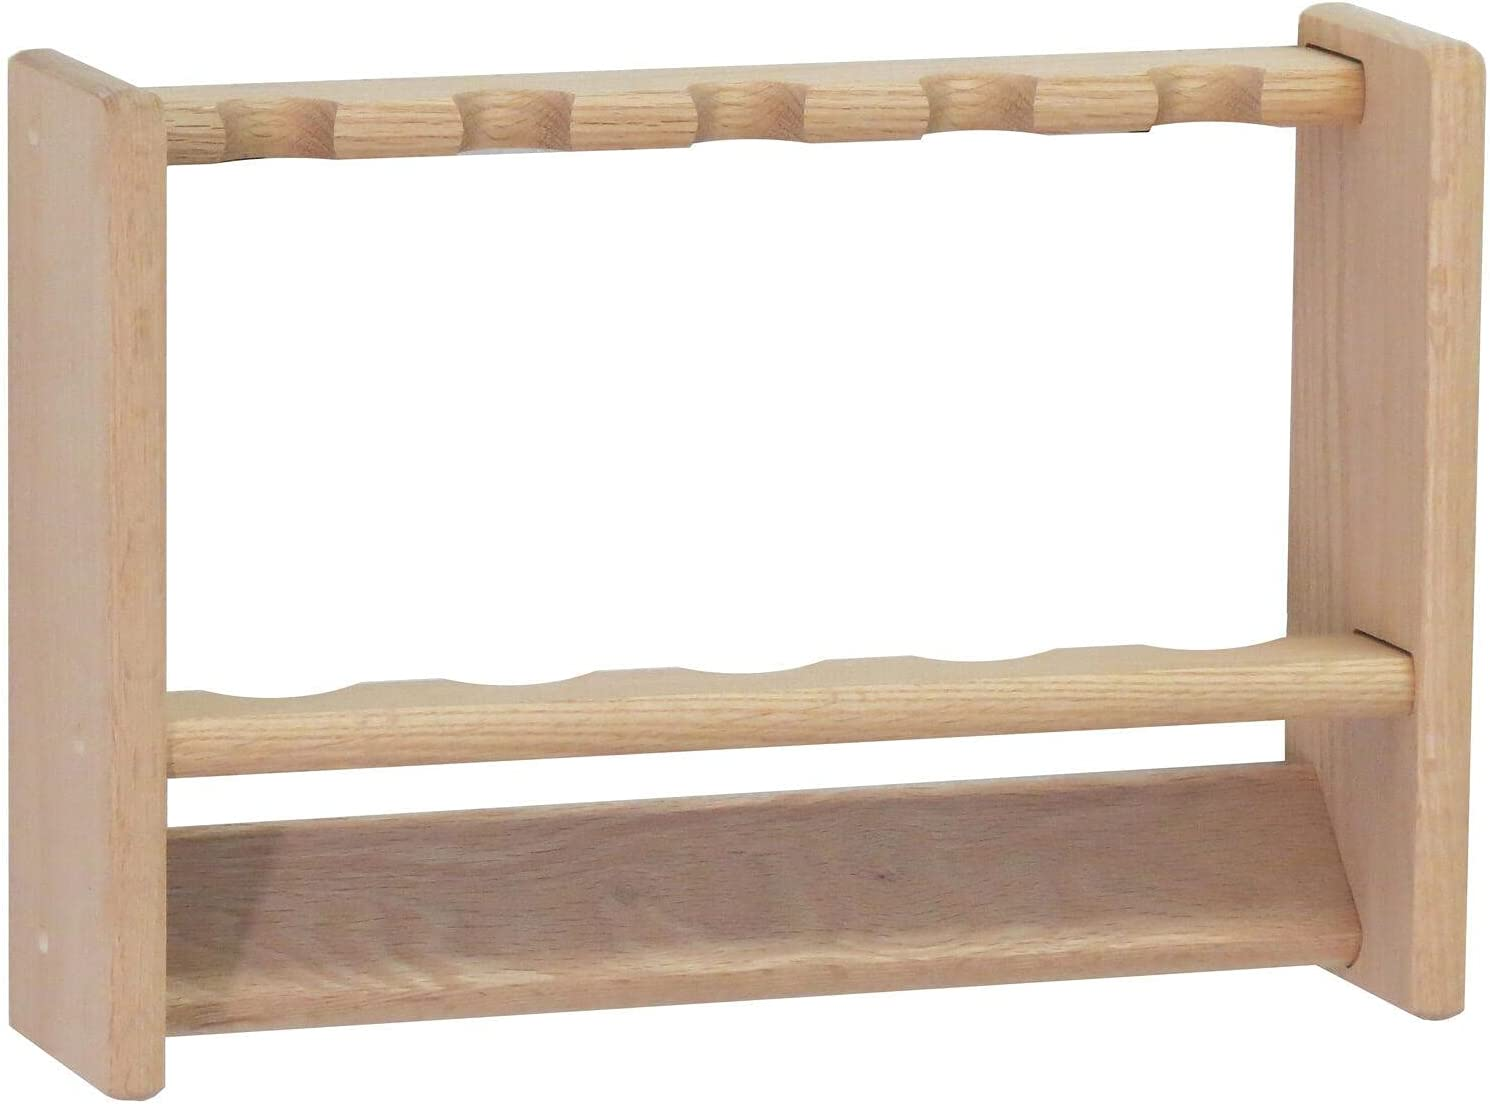 Pool Cue Rack 5 table cue It is Max 49% OFF very popular games Ga stick